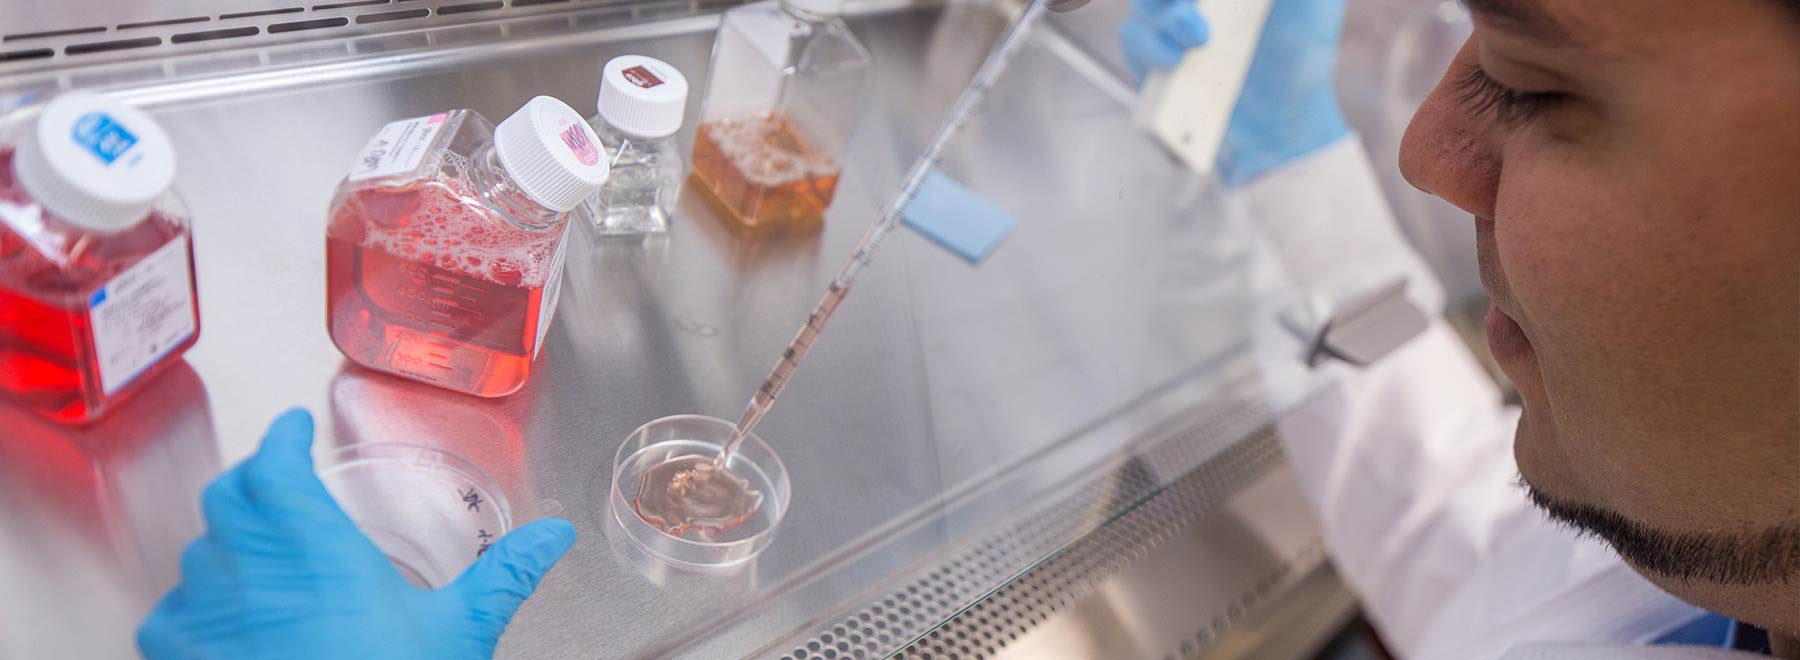 A researcher uses a pipet to conduct an experiment at a lab bench